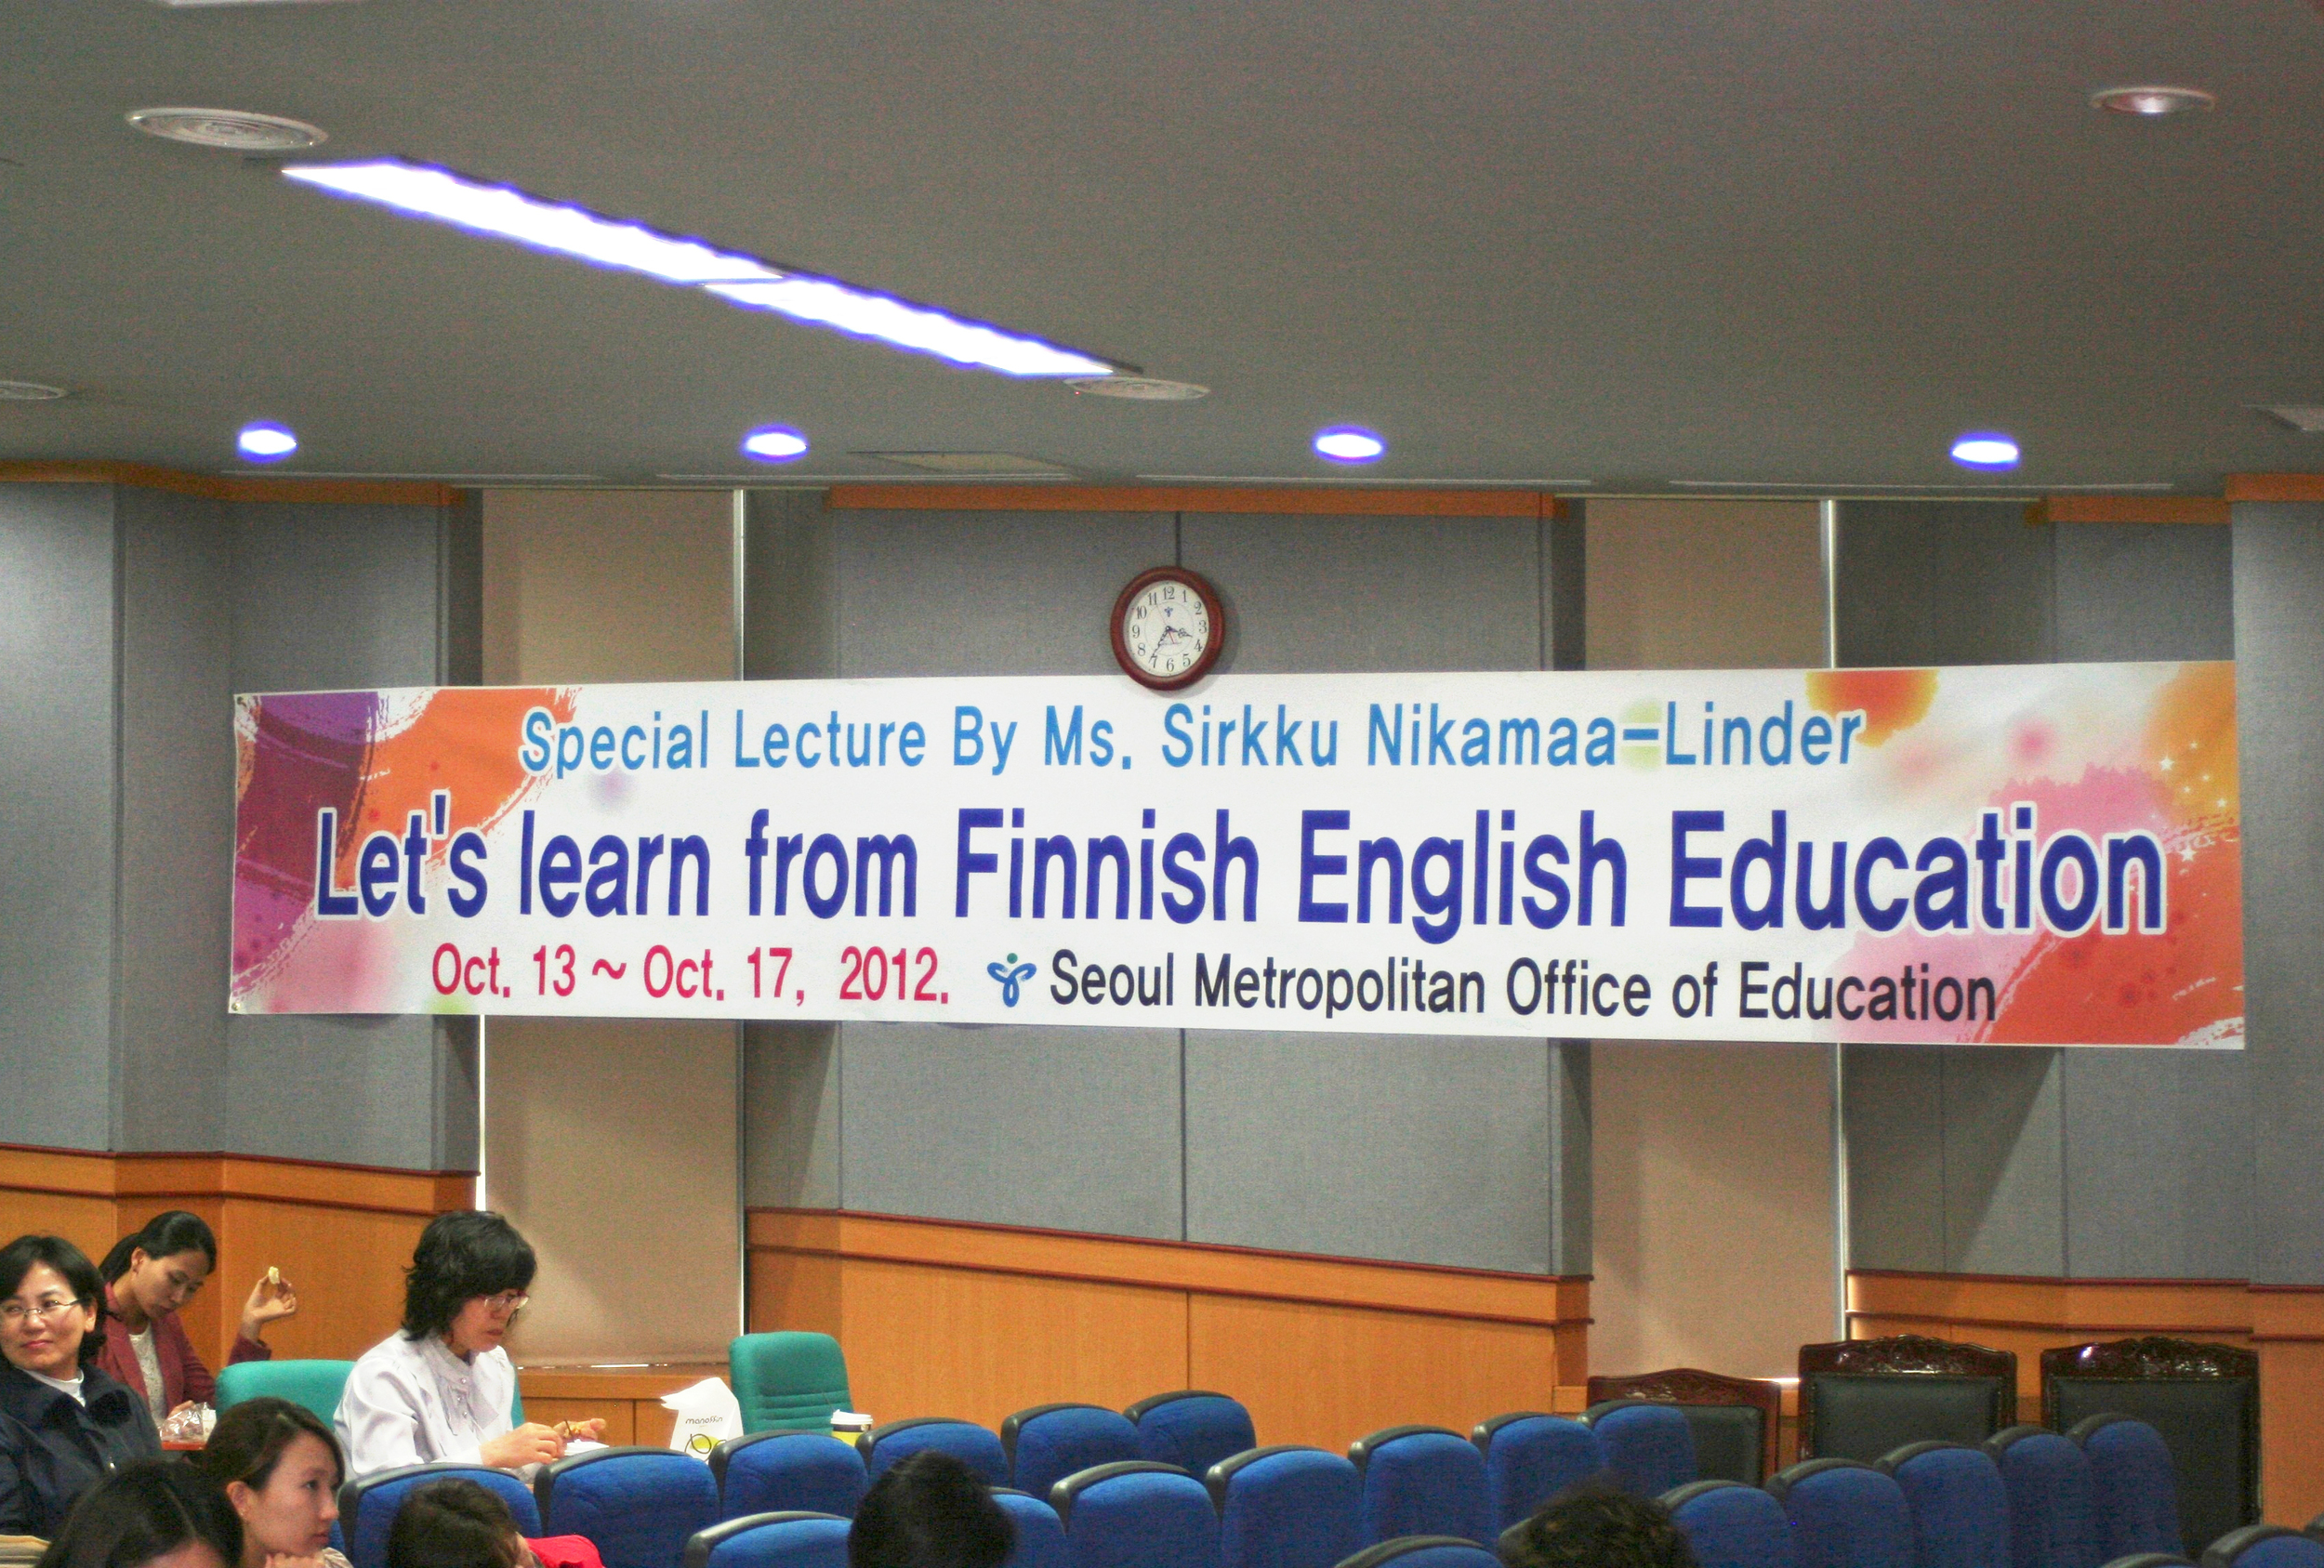 Finnish_English-Education1.jpg